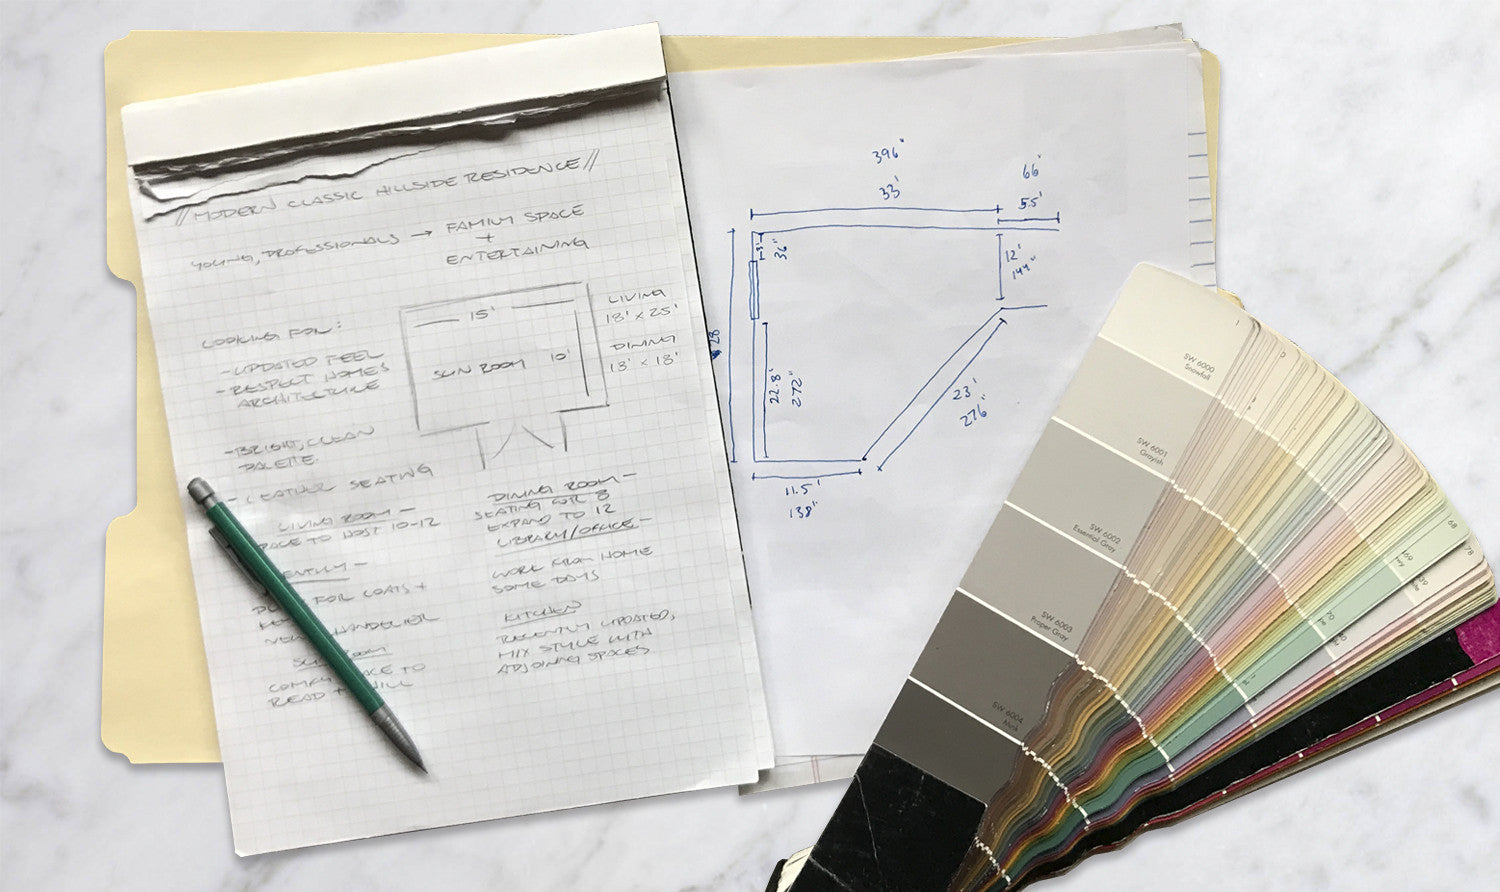 Our Full Service Design Process Has Been Carefully Considered To Give You A Completely Personalized Experience And Outcome That Is Better Than Imagined